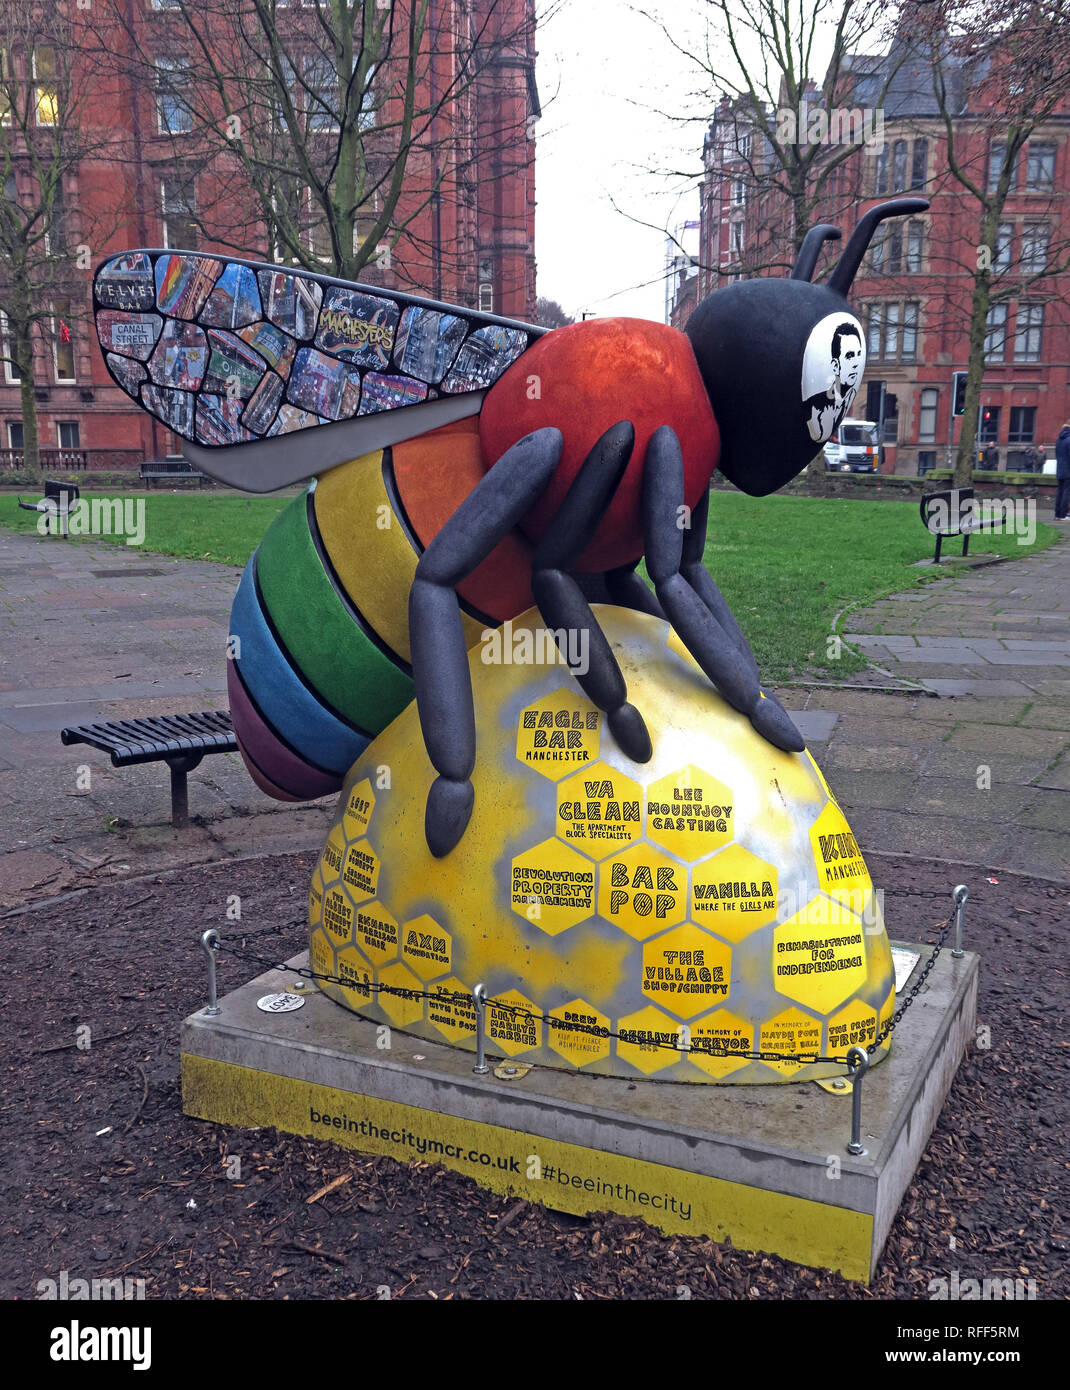 City centre,city,@HotpixUK,HotpixUK,GoTonySmith,North West England,UK,England,Canal Street,Gay Village,gay,village,LGBT,LGBTI community,community,Alan,Turing,Love is love,Bee In The City,Sackville Gardens,Canal St,Manchester